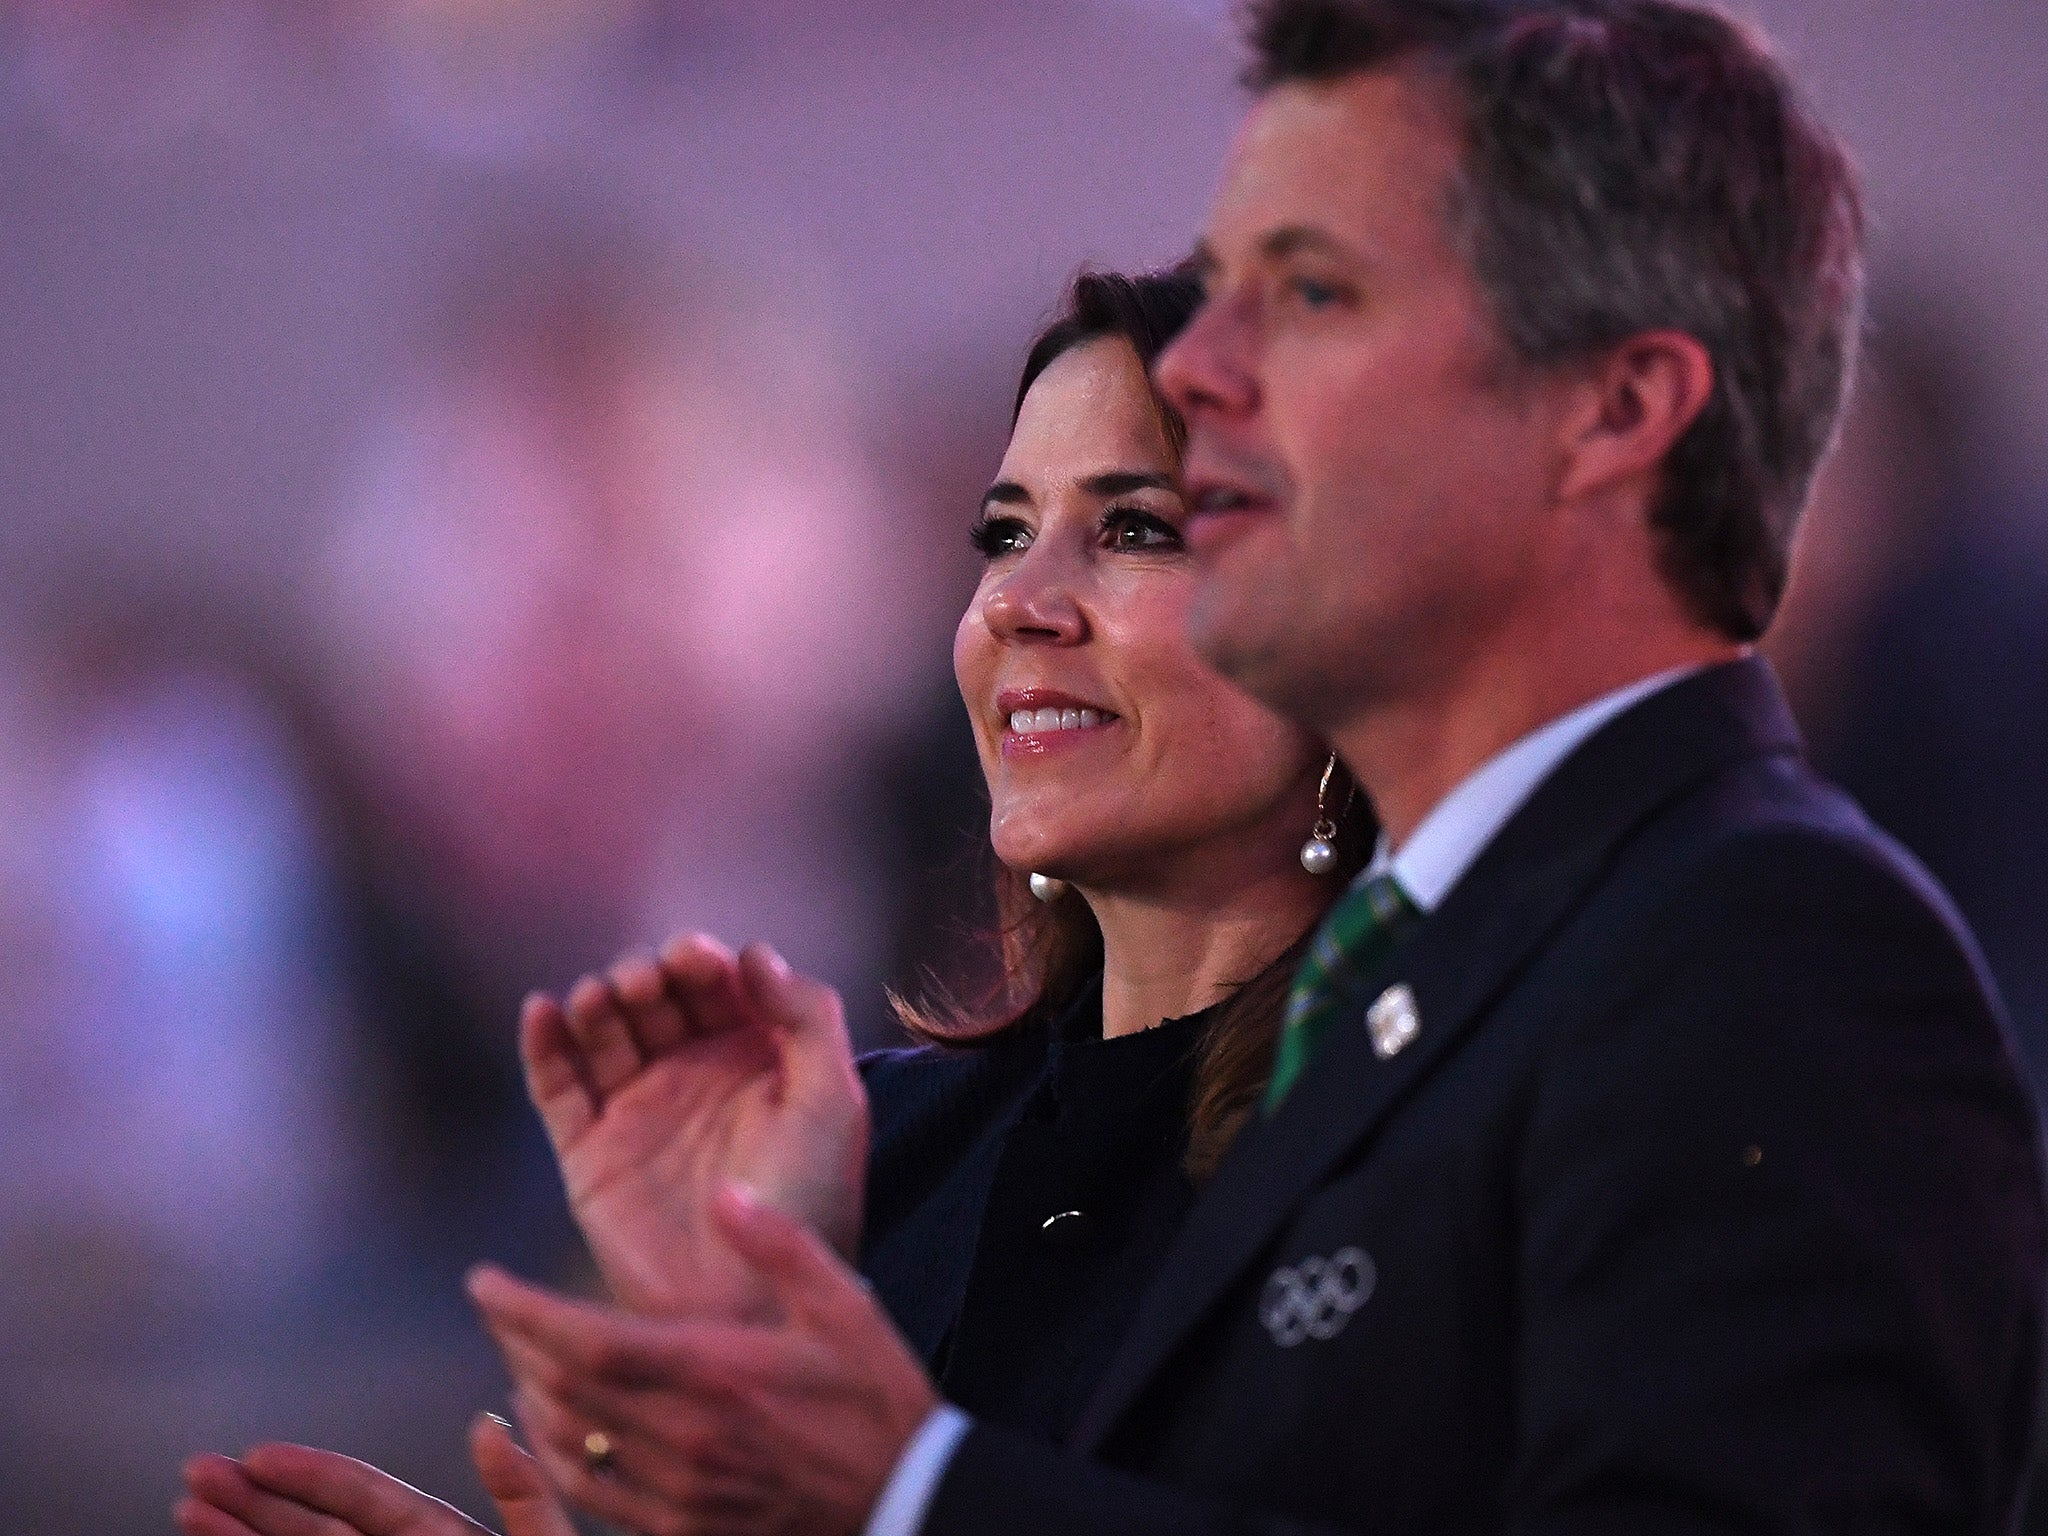 Danish Royal family - latest news, breaking stories and comment